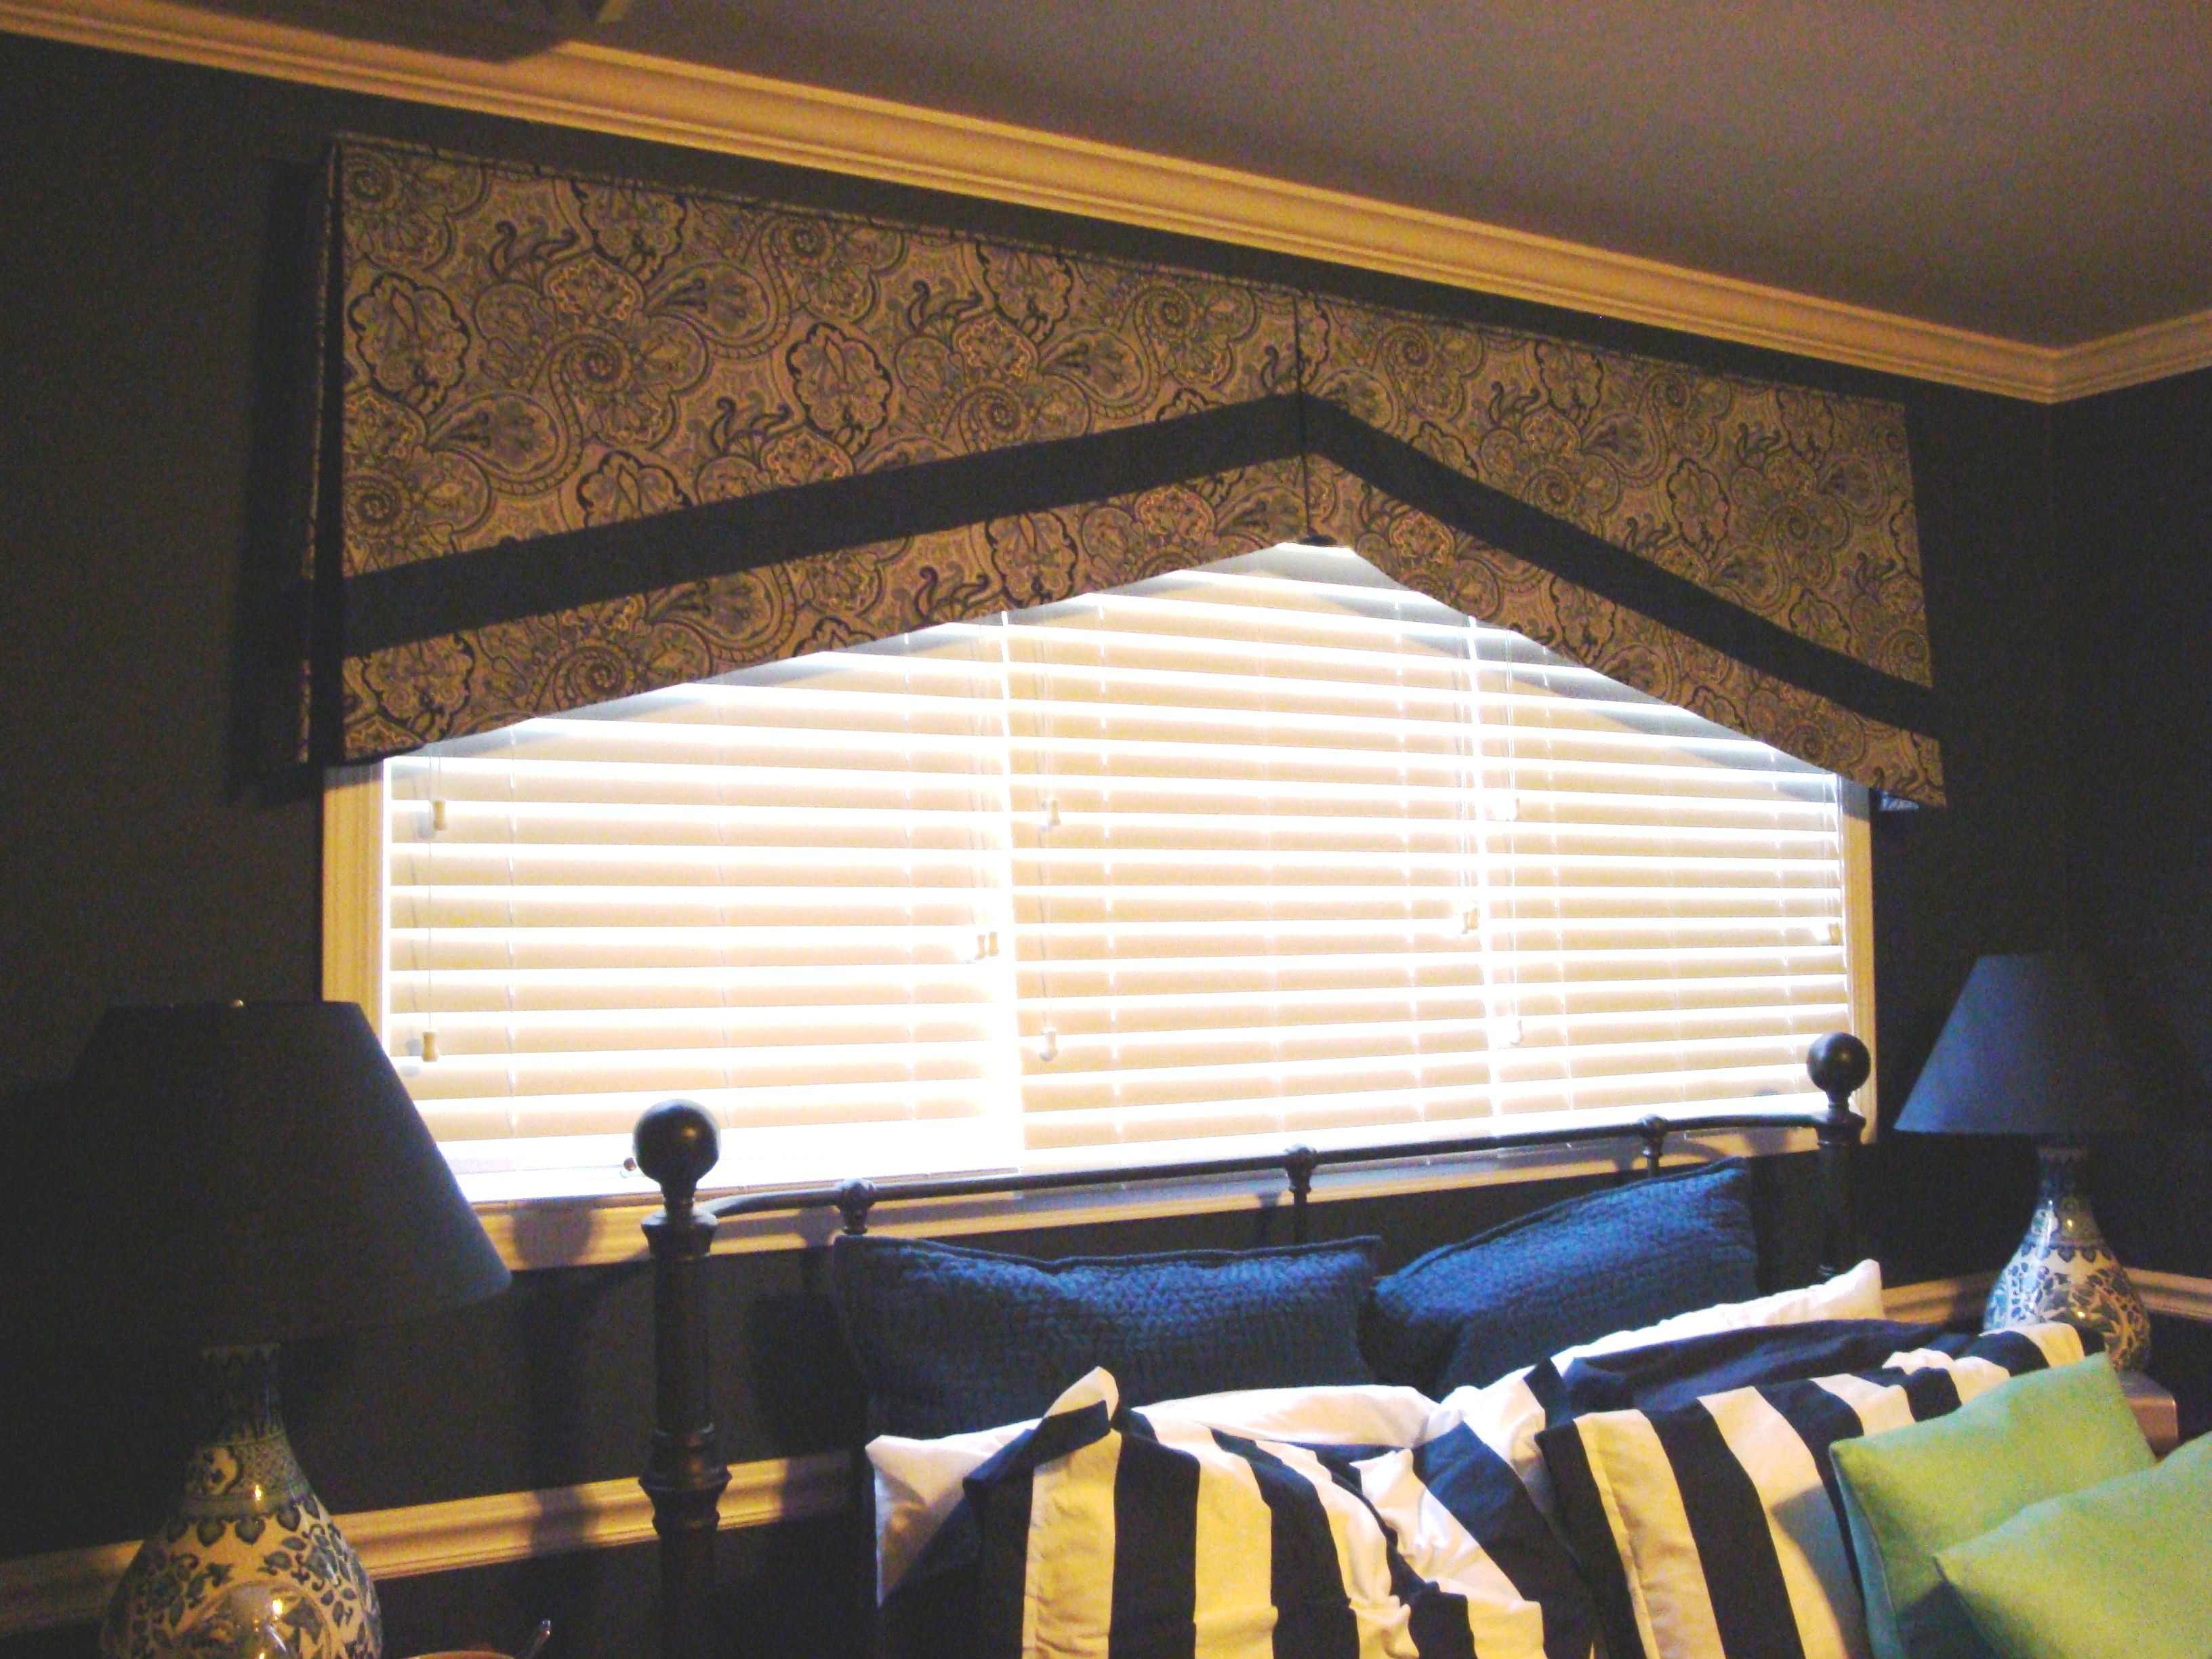 A dark place for sleeping with an angle for detail by Soulscape Interiors, Inc.